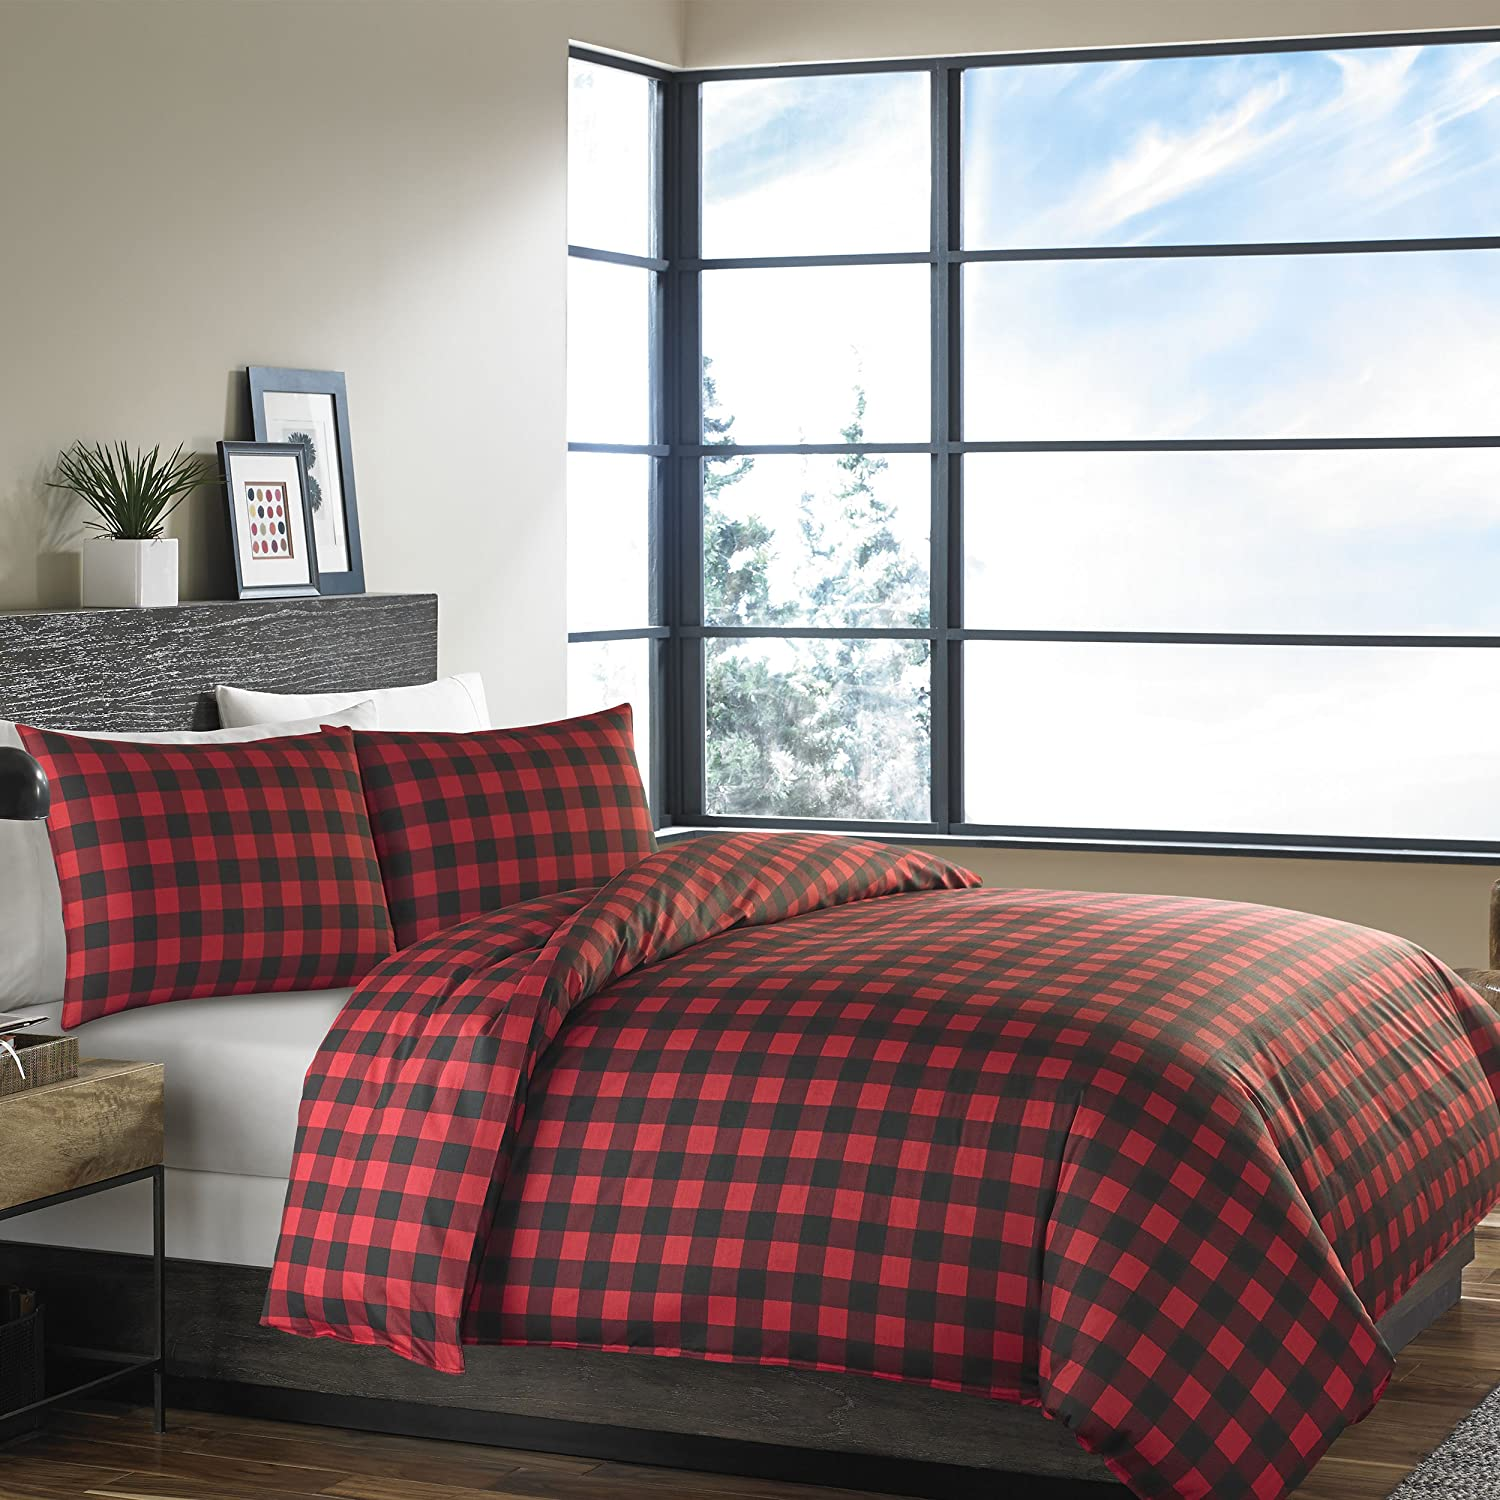 Eddie Bauer Mountian Mountain Plaid Comforter Set, Full/Queen, Scarlet Red, 3 Piece